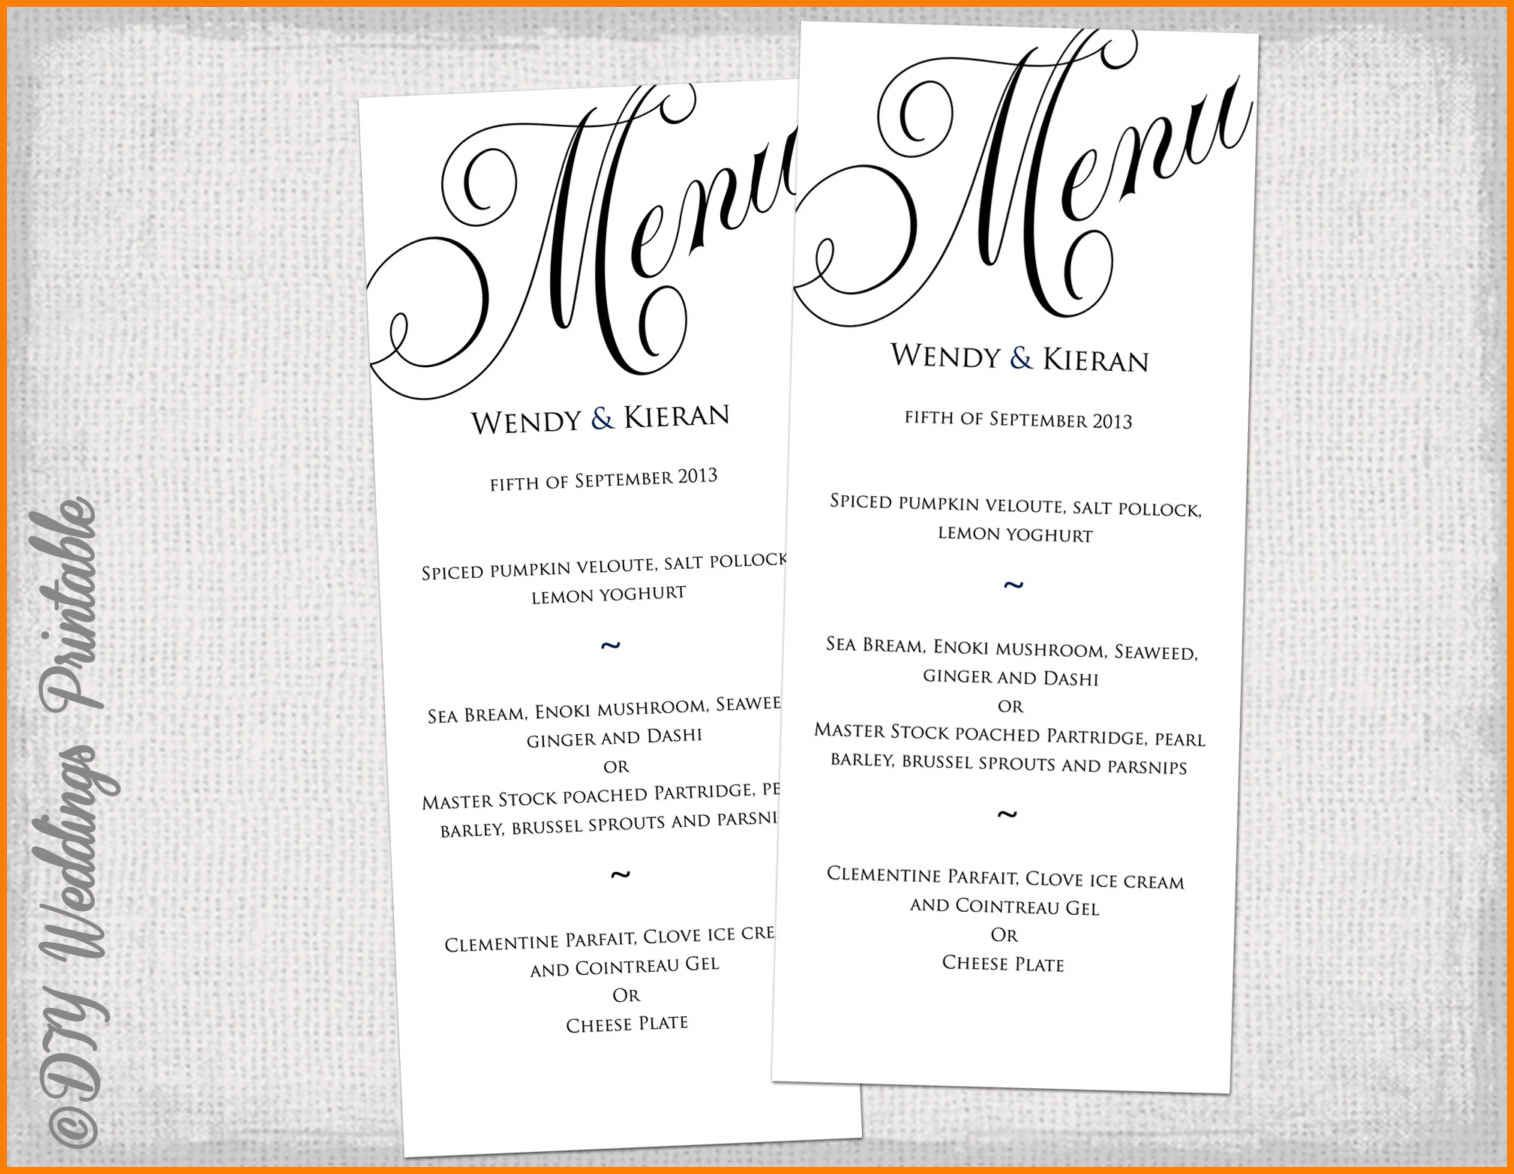 The Excellent 005 Dinner Party Menu Template 8 Best Images Of